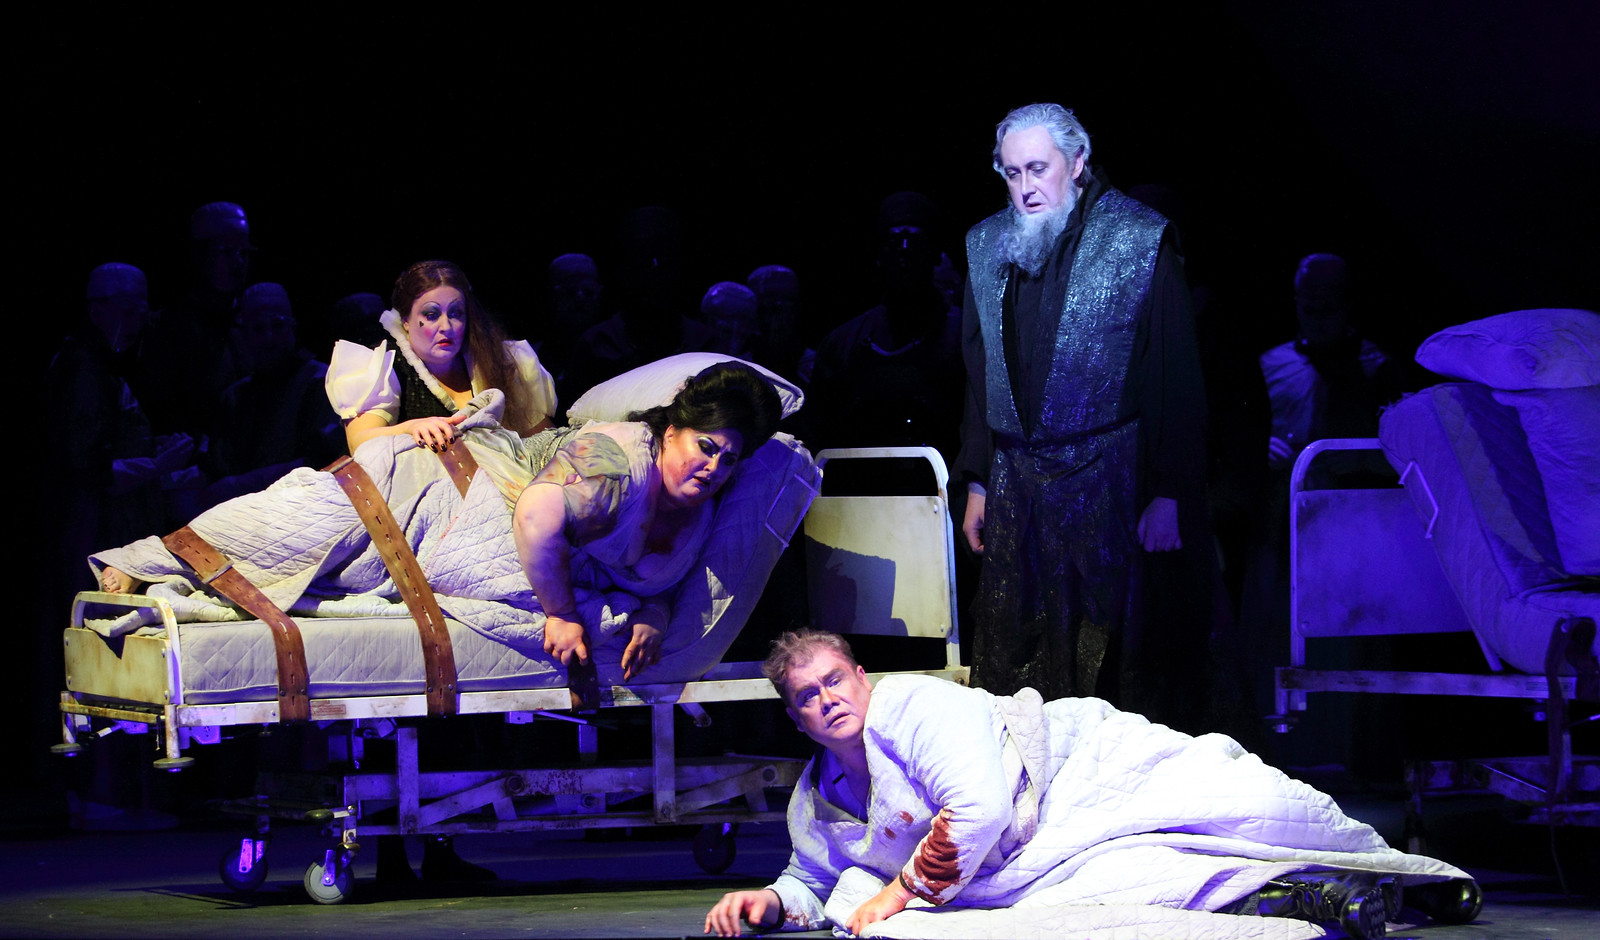 Act Two scene from ENO Tristan and Isolde